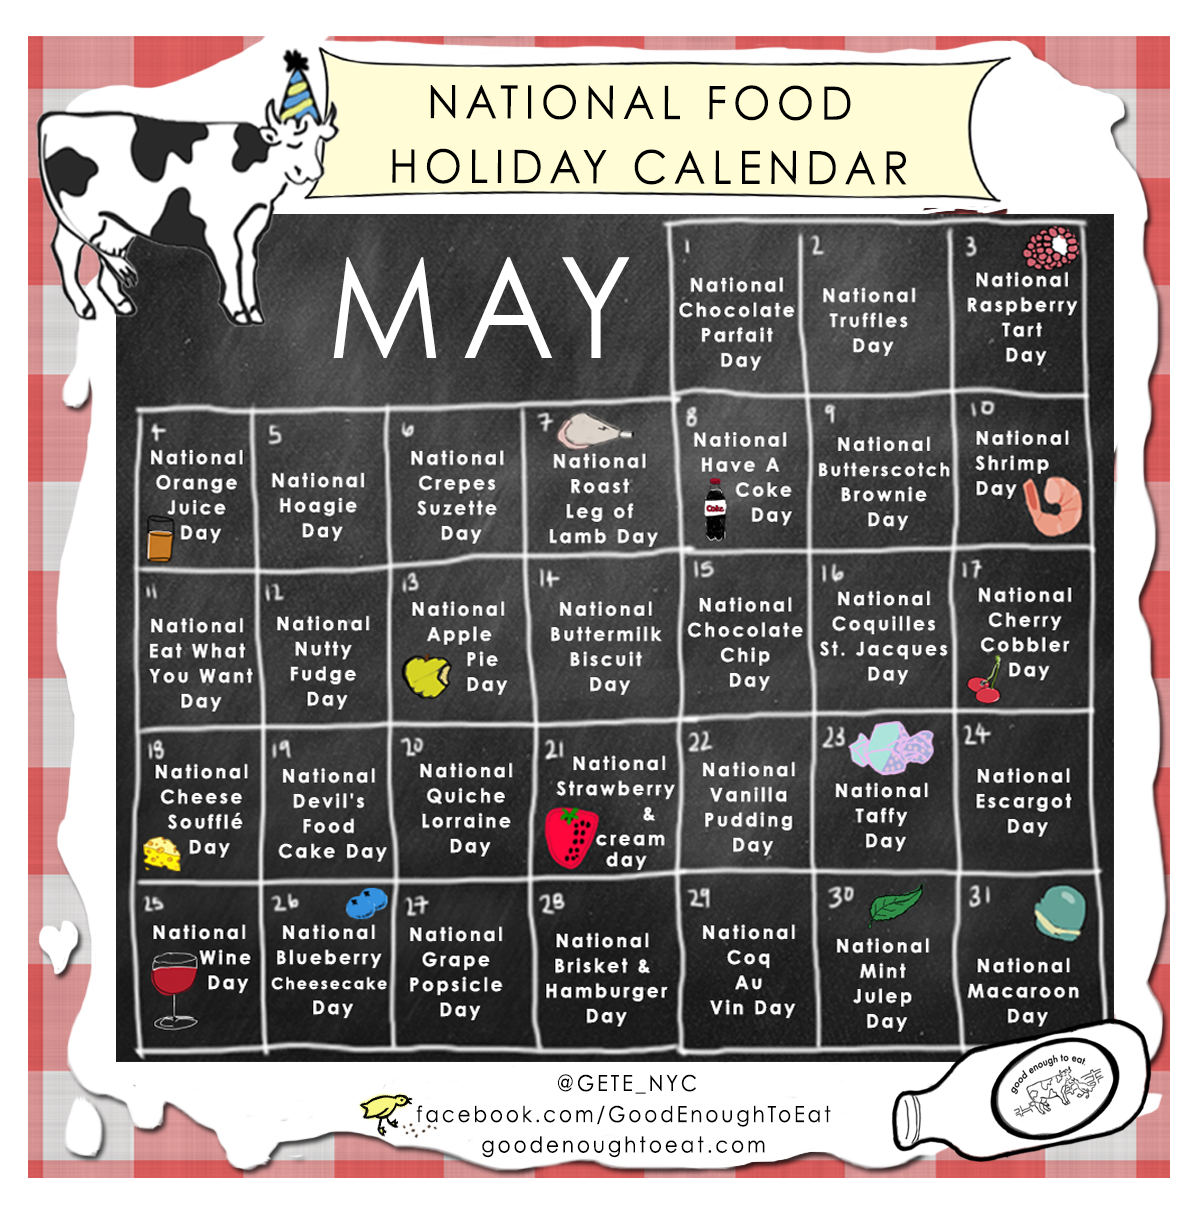 National Food Day Calendar Printable | Calendar Template 2016